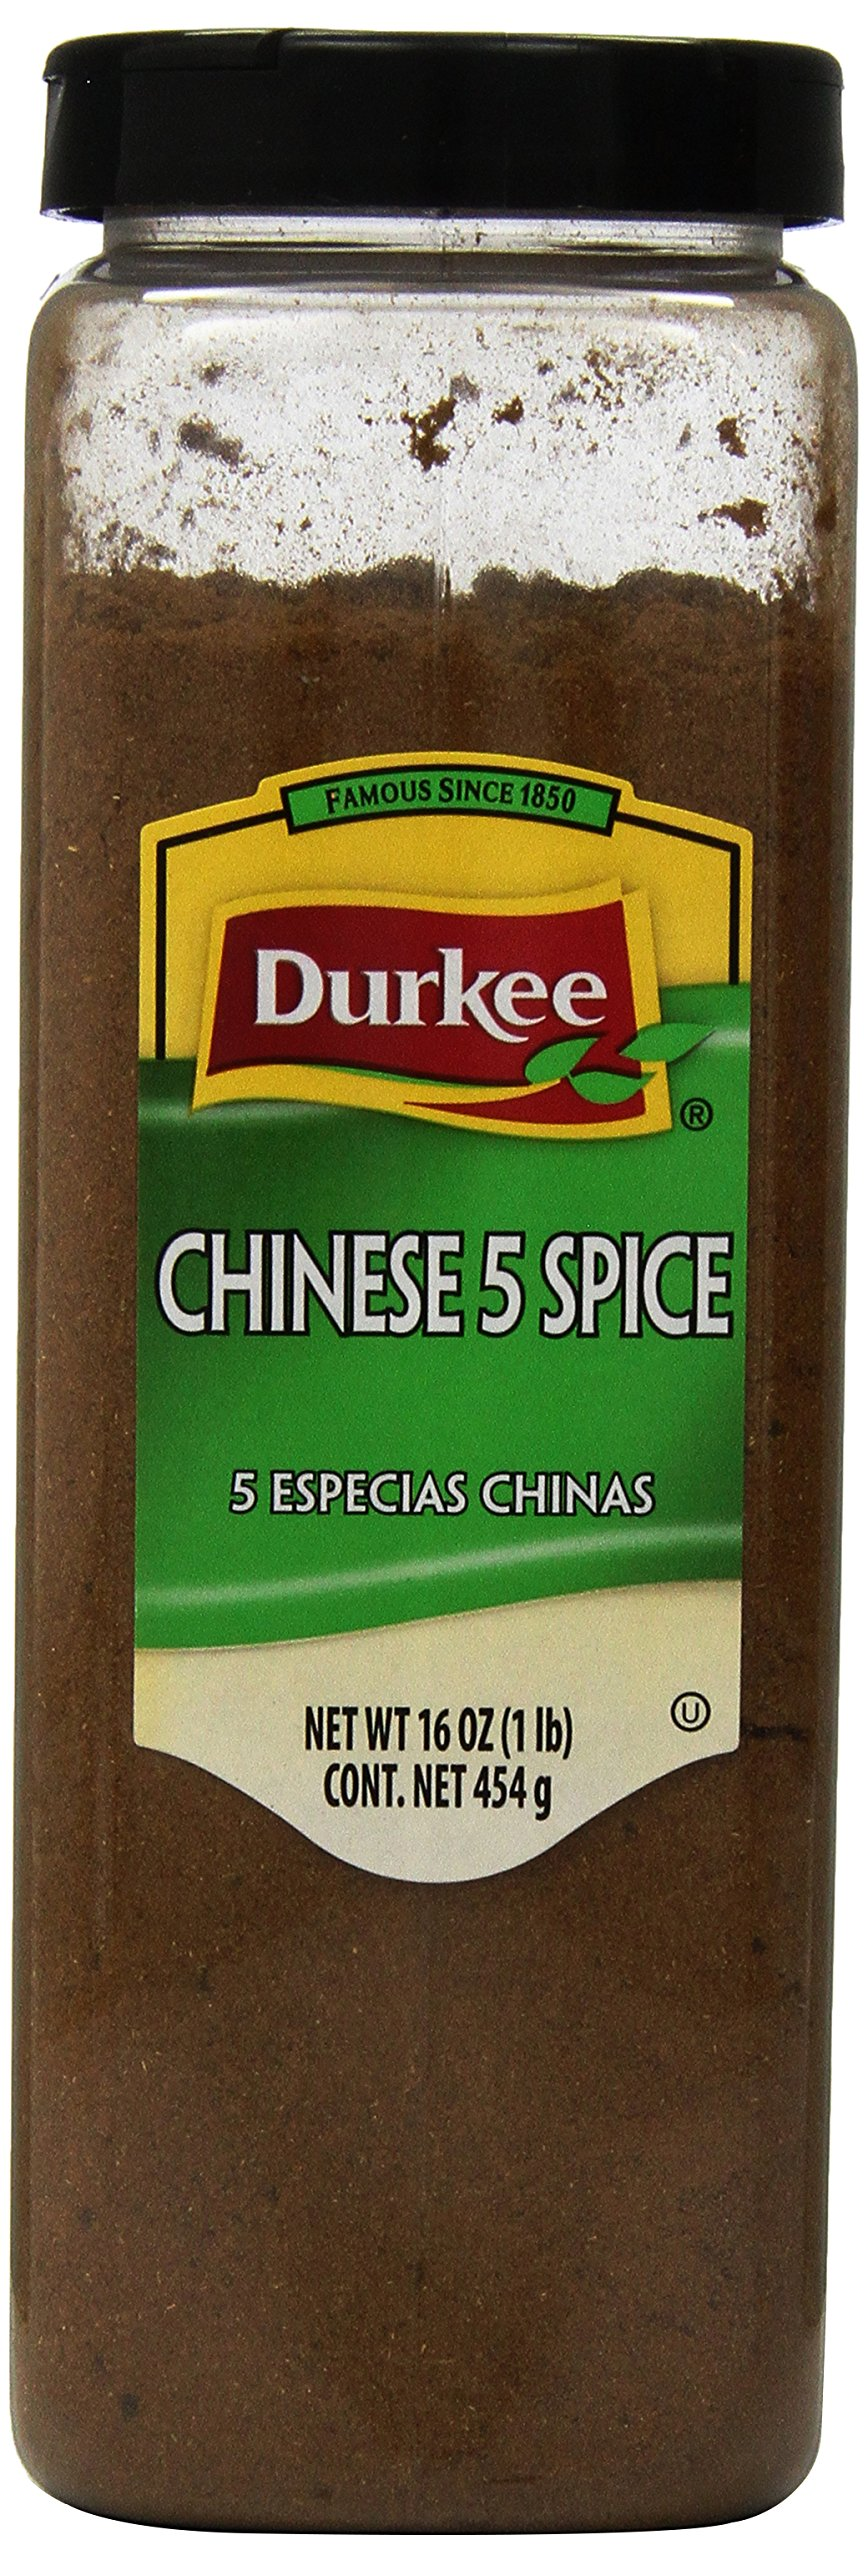 Durkee Chinese 5 Spice, 16-Ounce